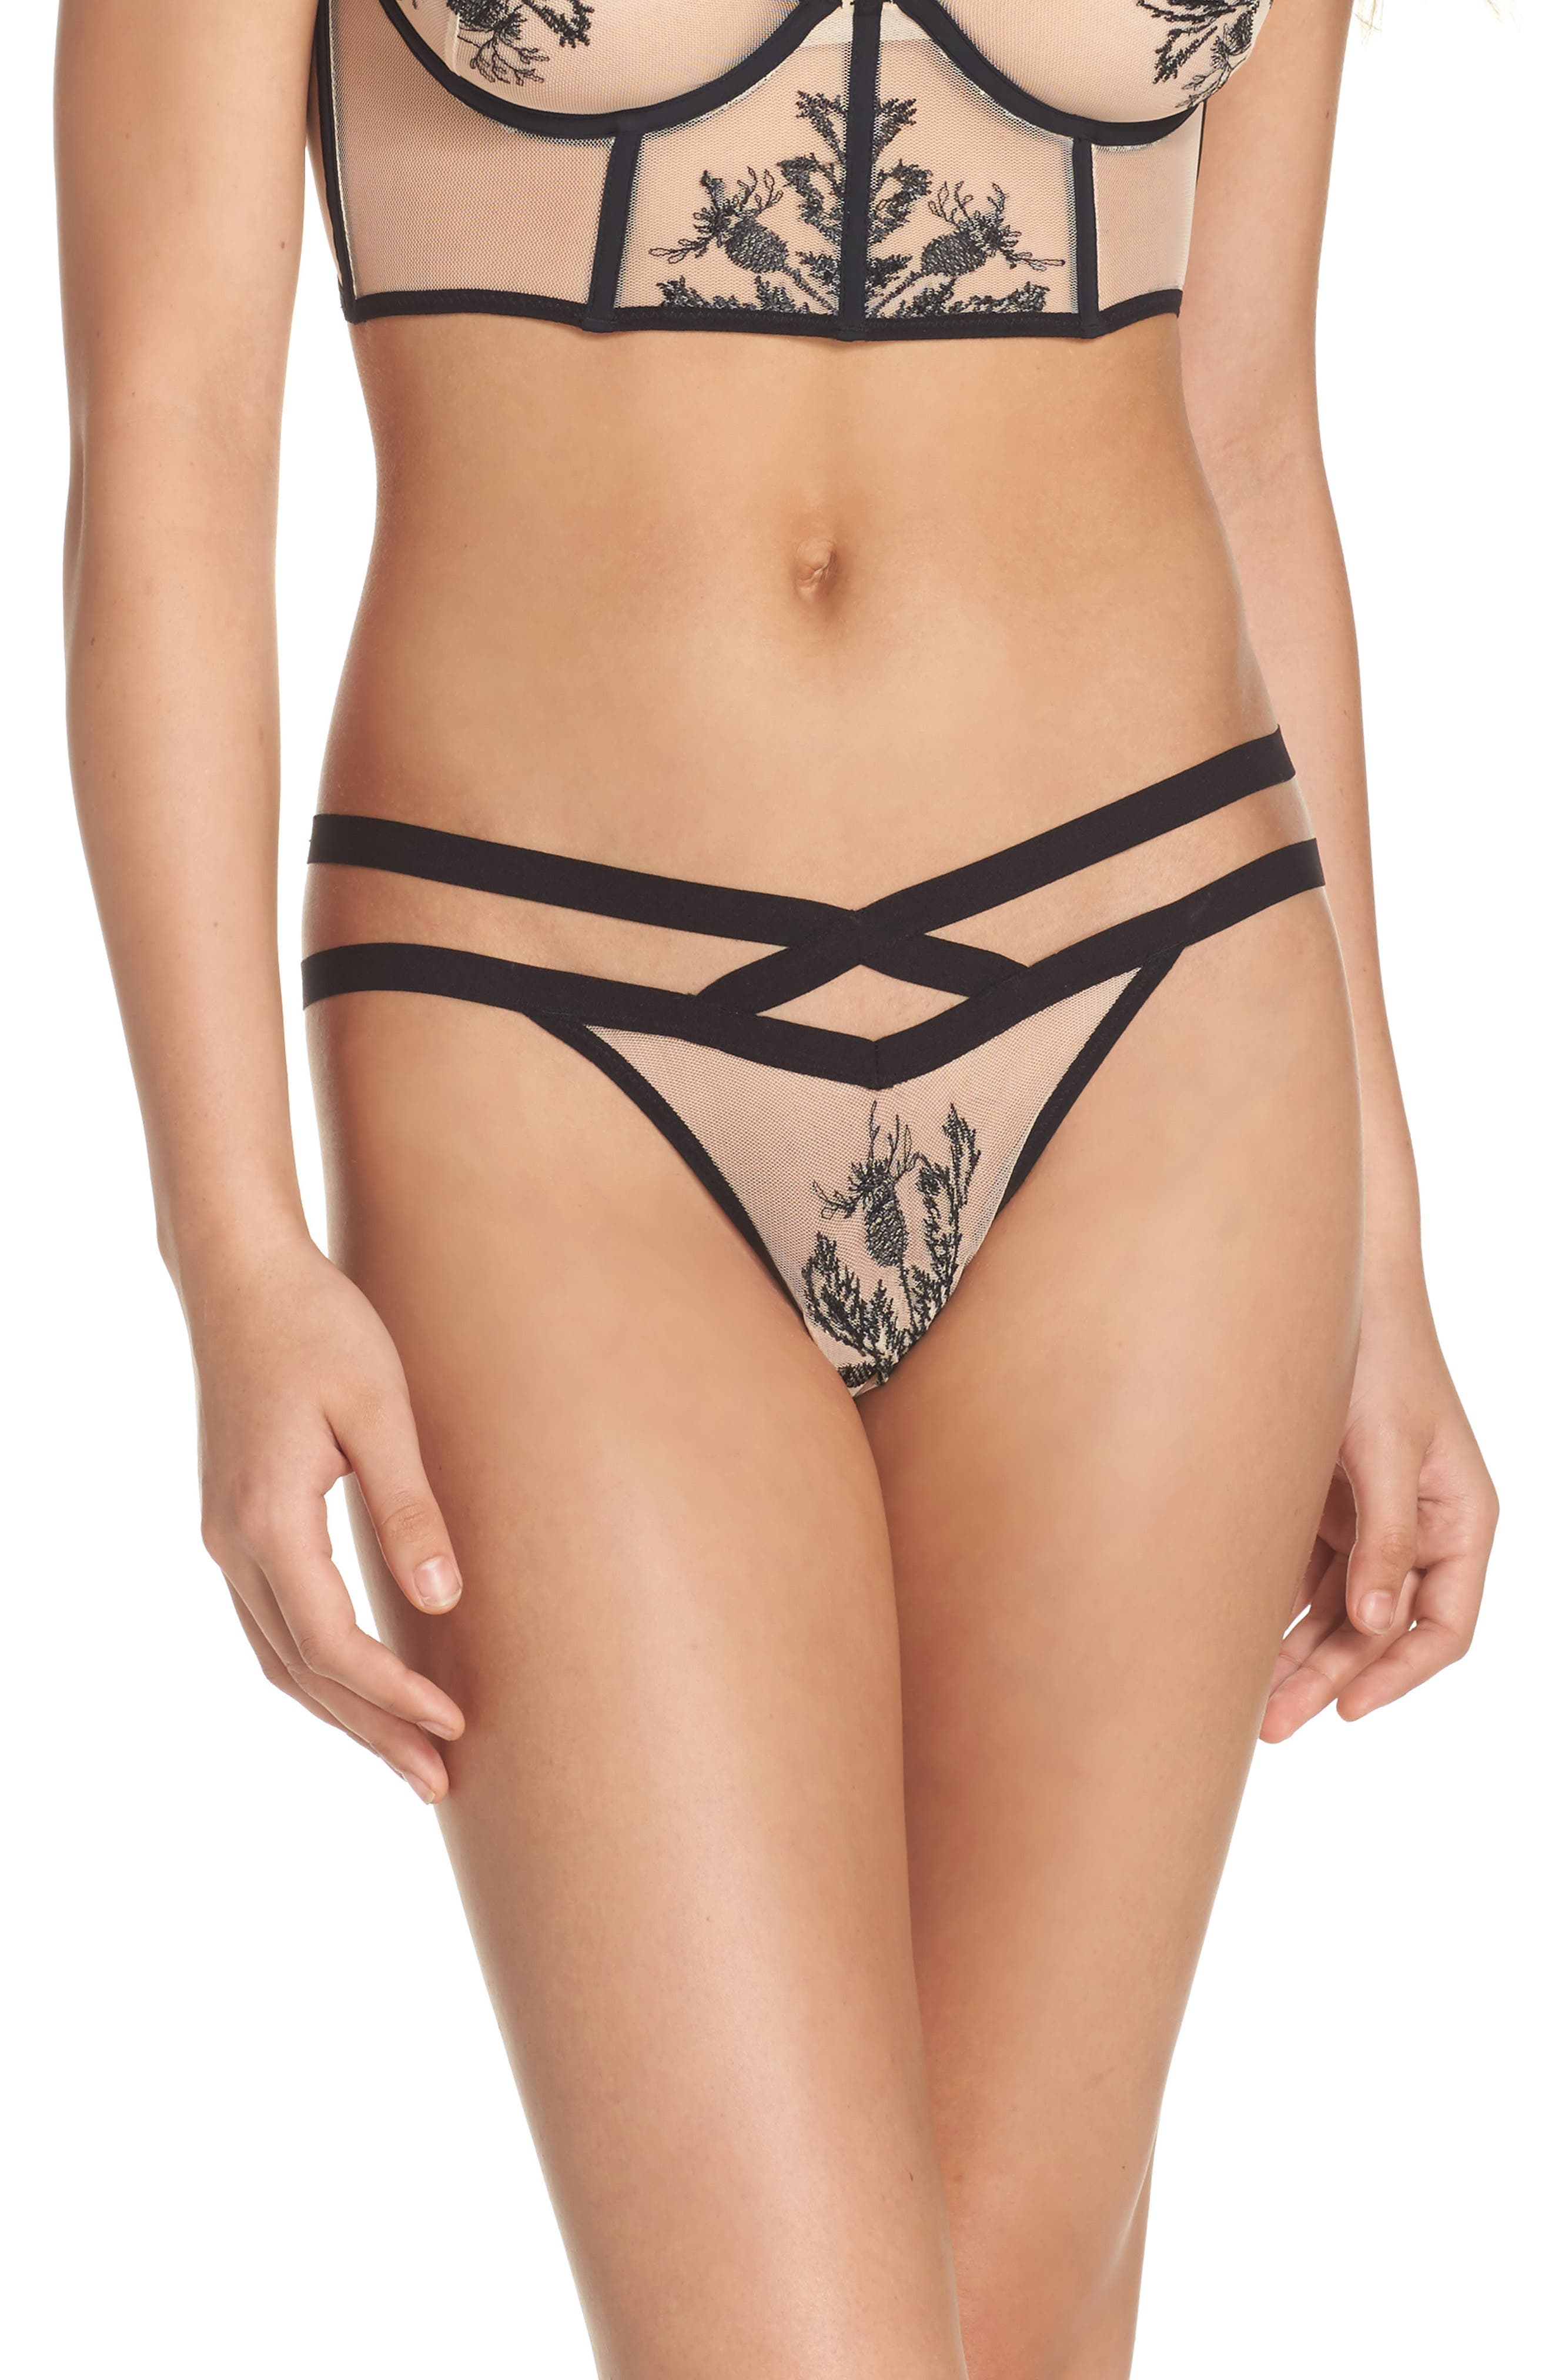 Verona Embroidered Mesh Thong,                             Main thumbnail 1, color,                             001